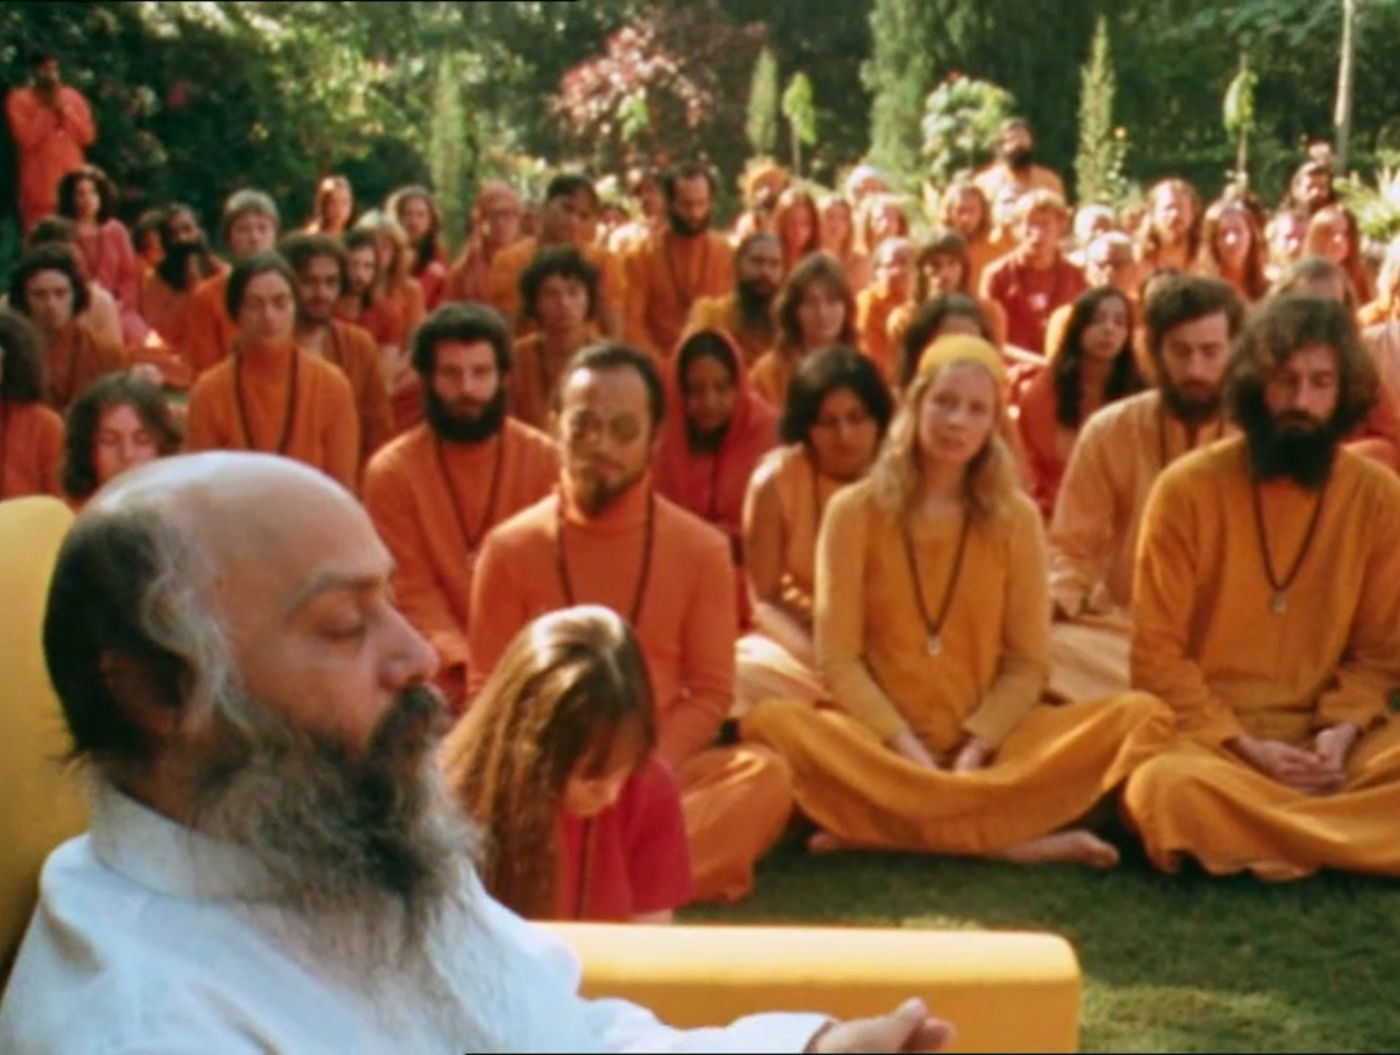 Here's what Netflix's Wild Wild Country doesn't explain